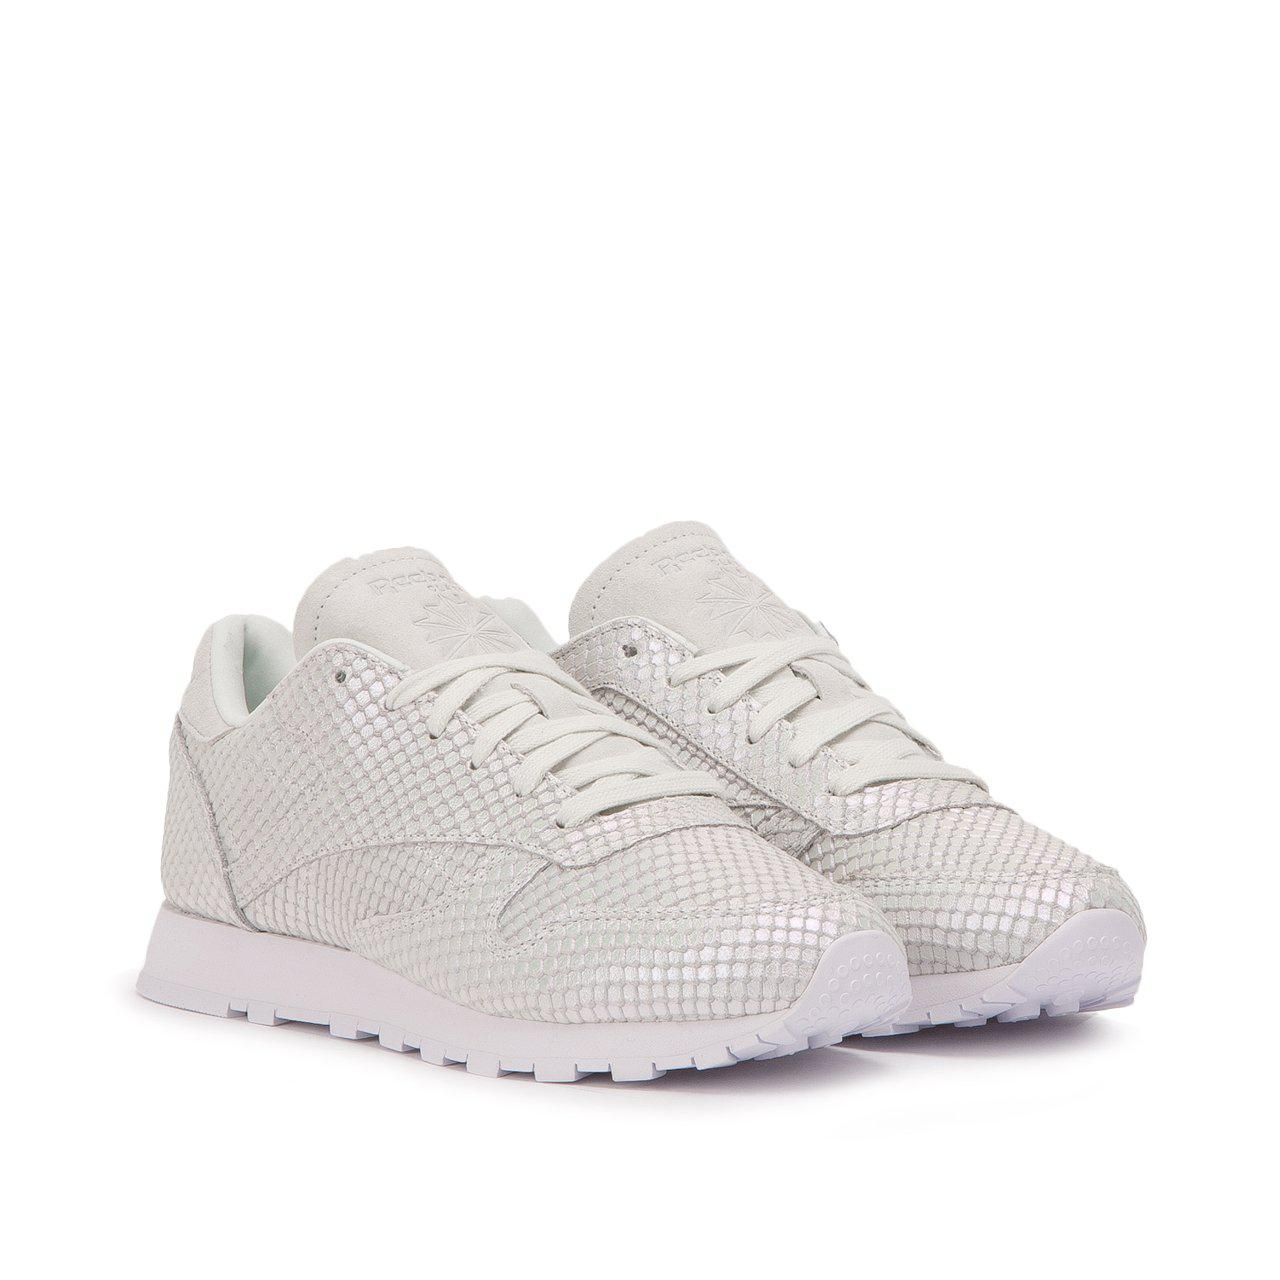 Reebok - Gray Classic Leather Textural W for Men - Lyst. View fullscreen 49cc3de99